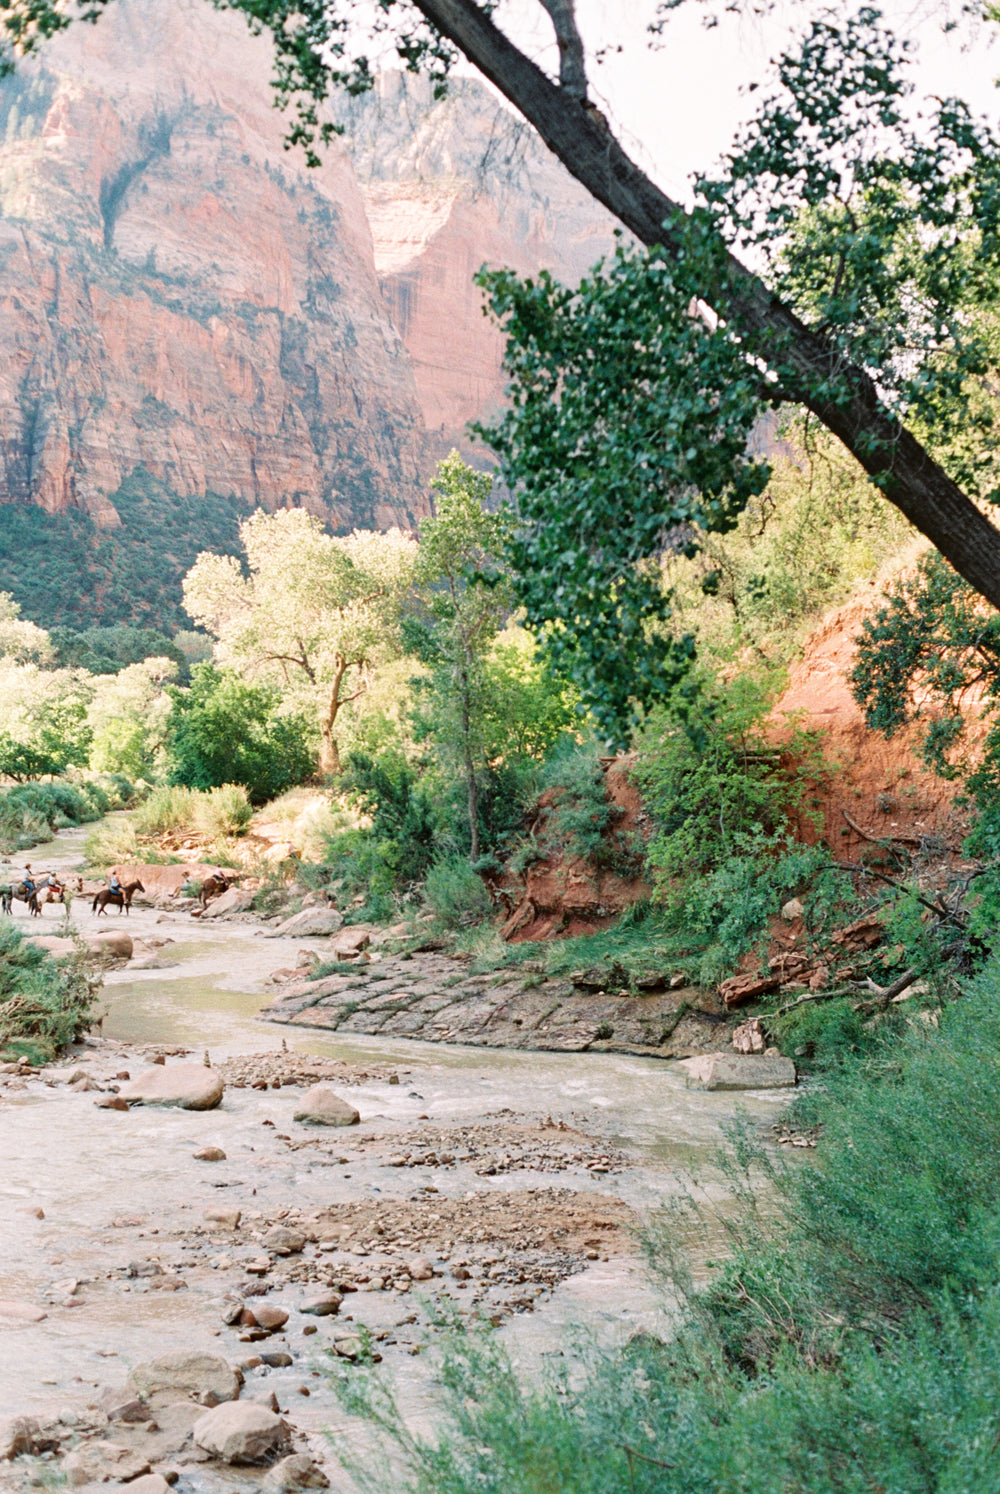 The Winding Virgin River